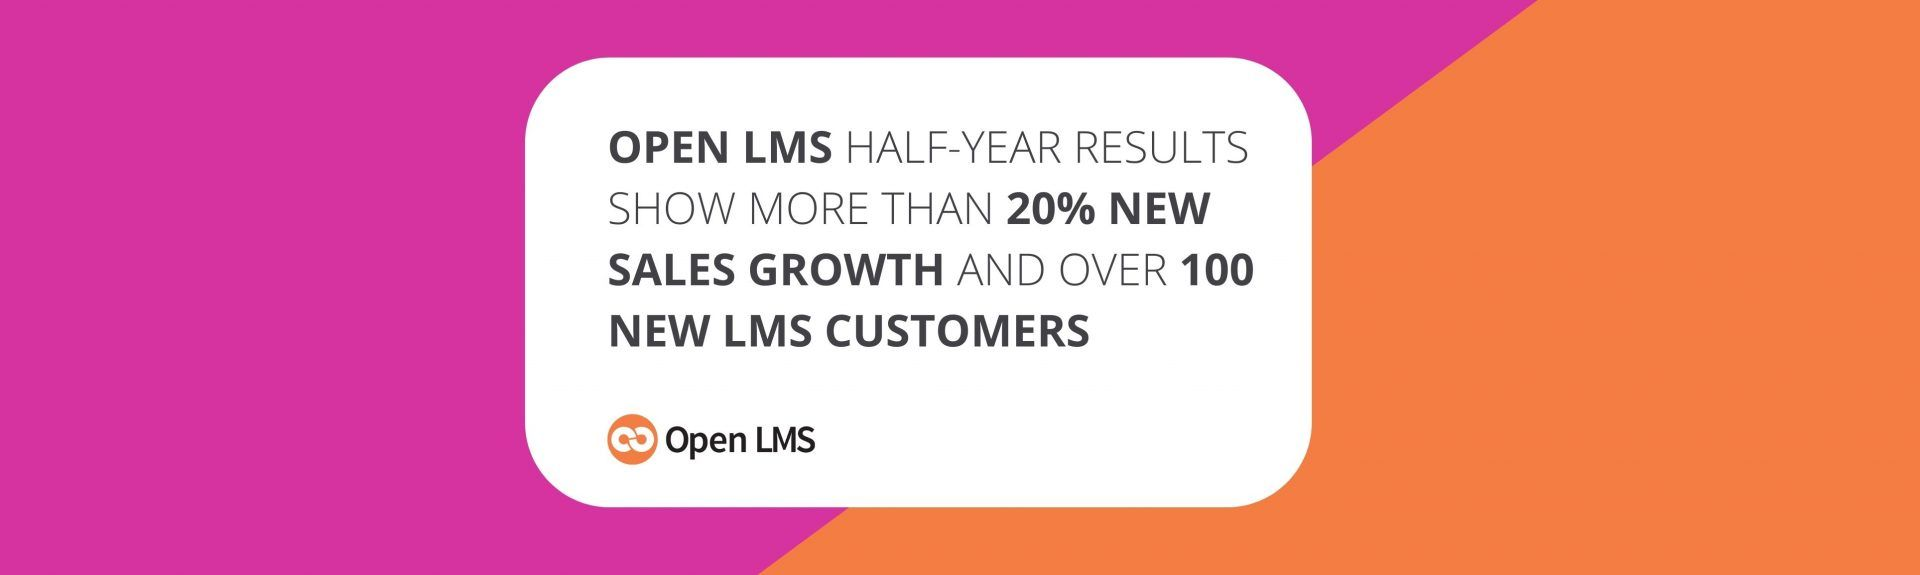 Open LMS Half-Year Results Show More Than 20% New Sales Growth and Over 100 New LMS Customers